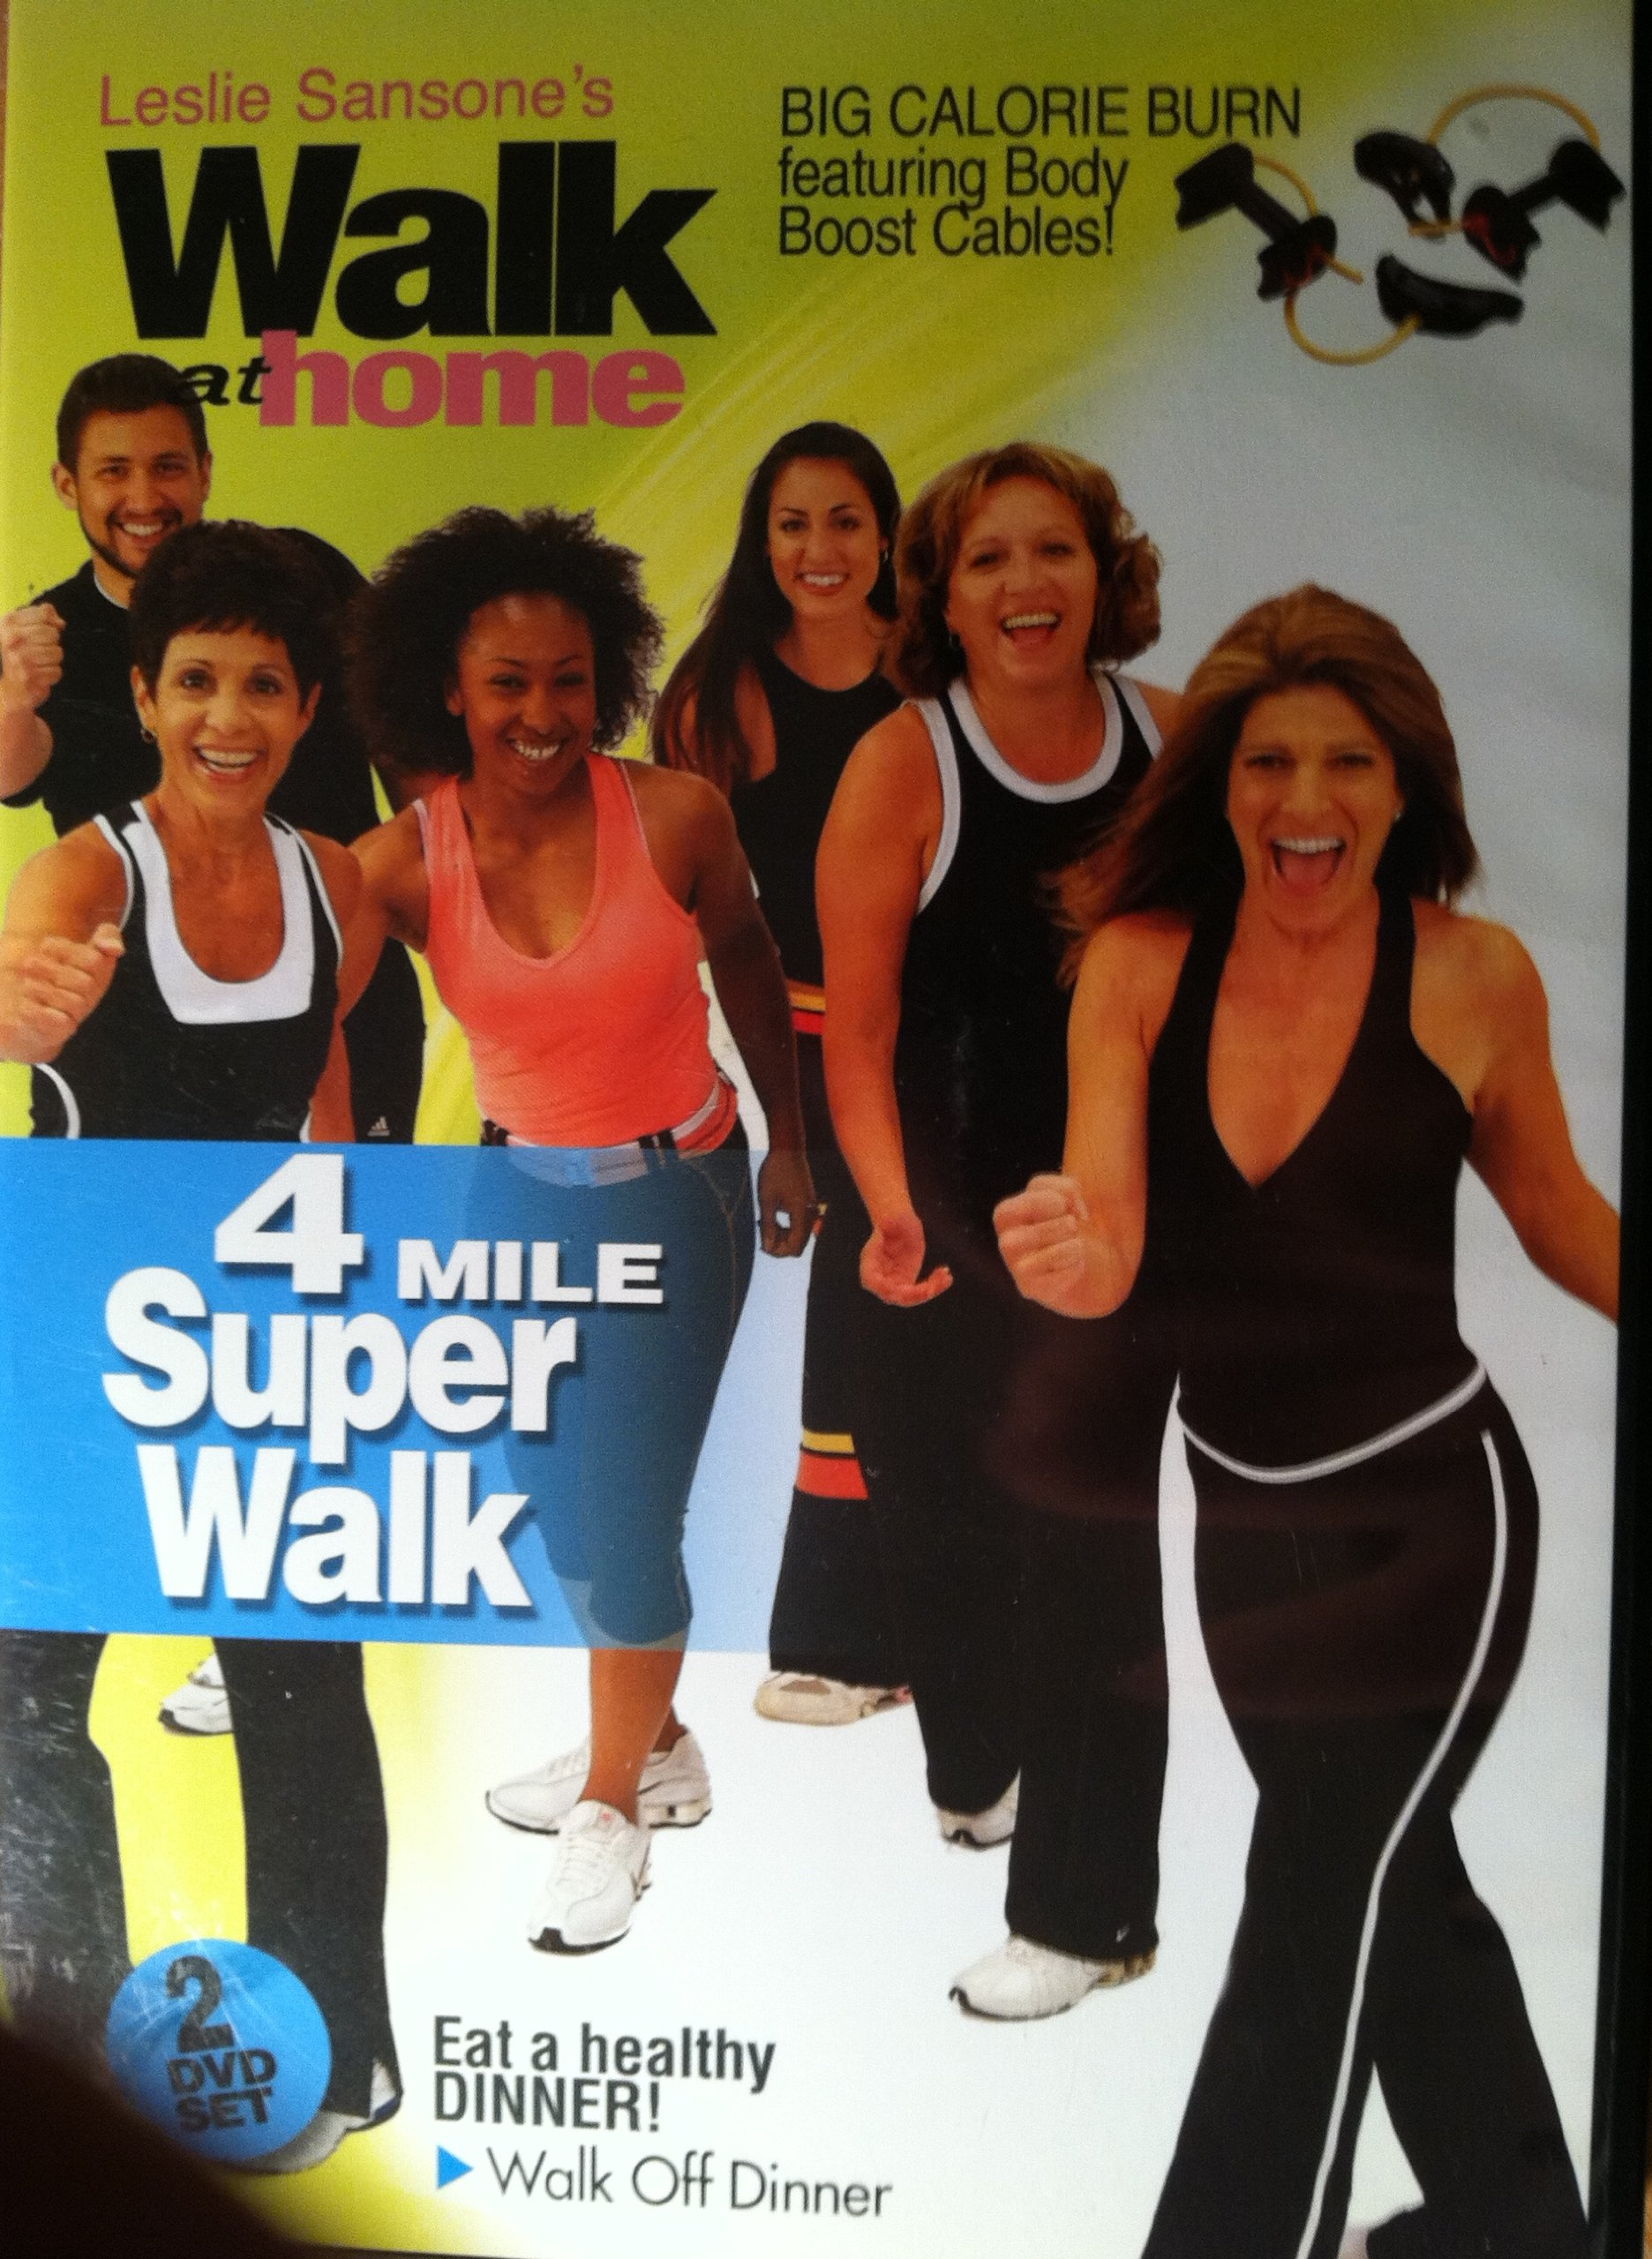 Leslie Sansone's Walk At Home Super Walk. 4 Mile Super Walk. 2 DVD Set